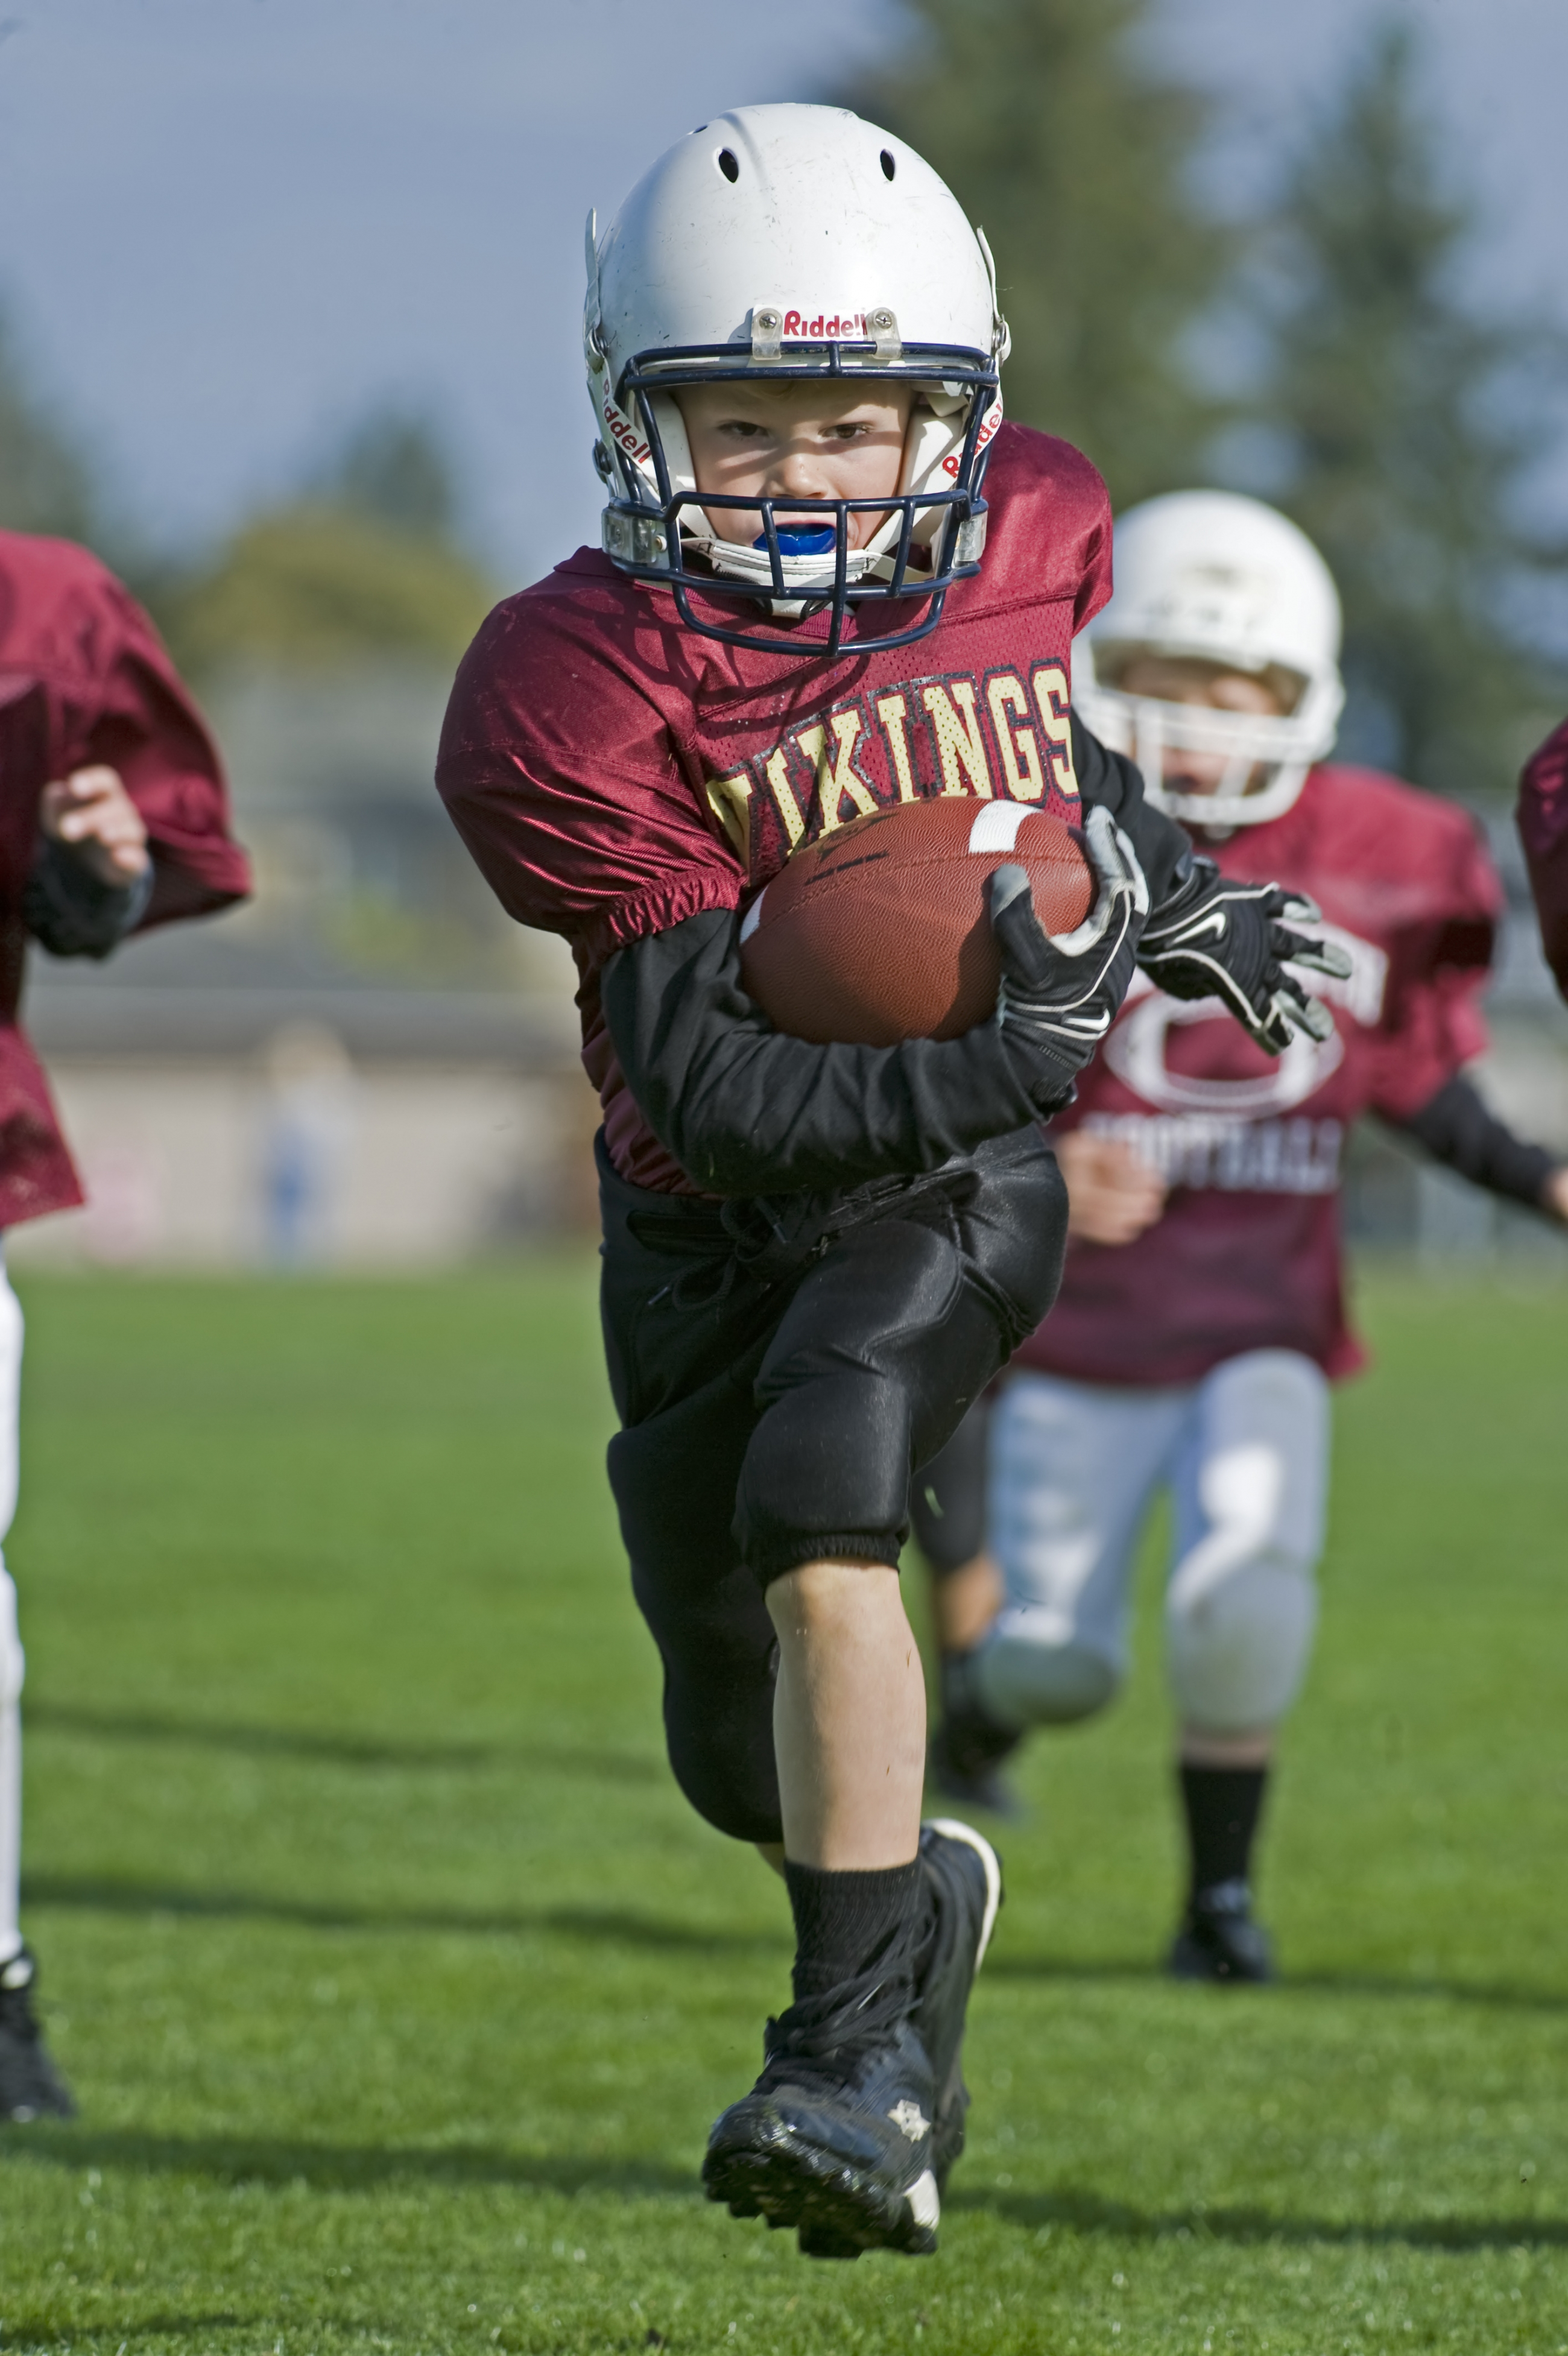 Datalys Center, Inc. - Youth Football Safety Study